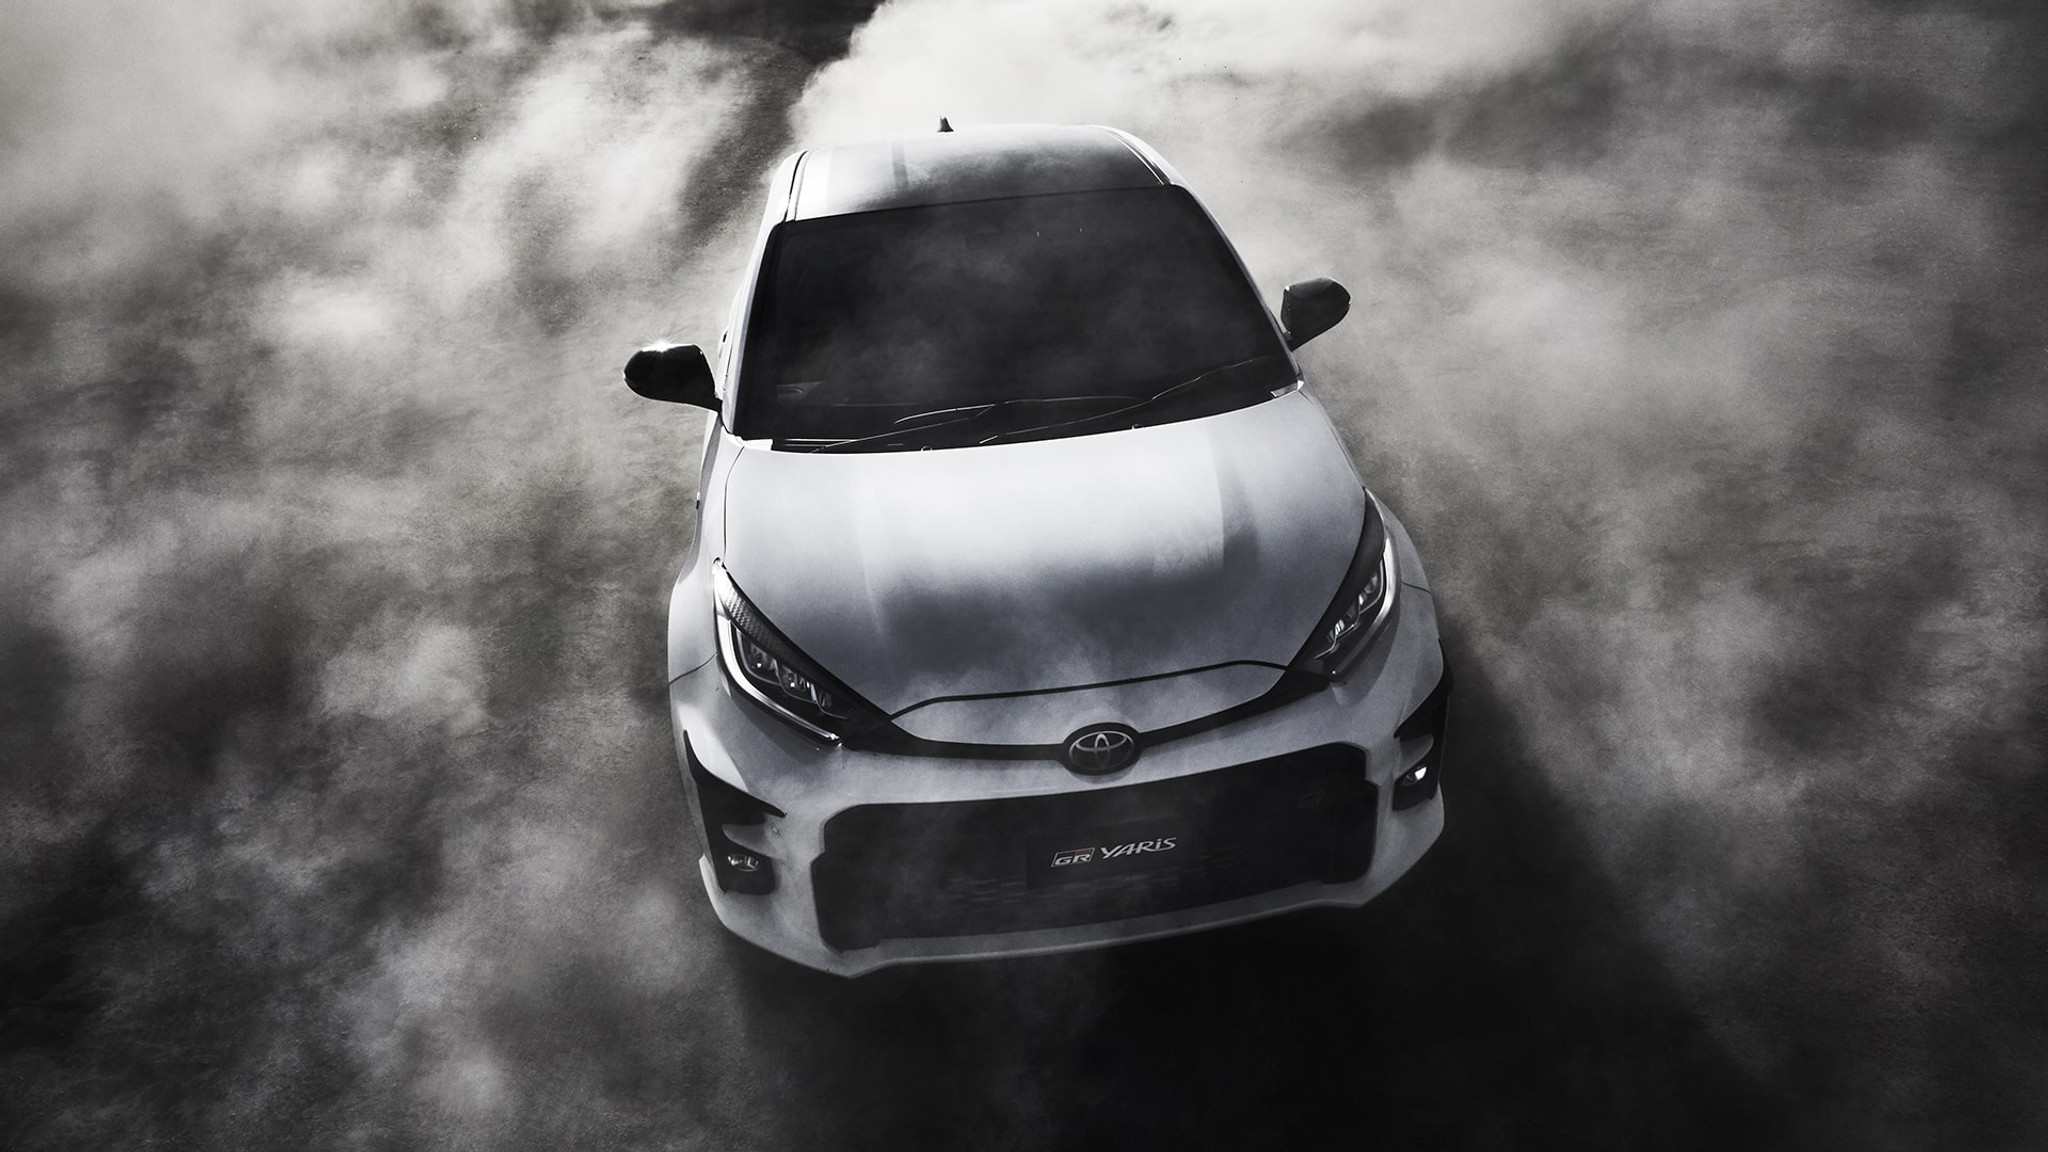 GR Yaris: A Rally Car for the Road | Phil Gilbert Toyota